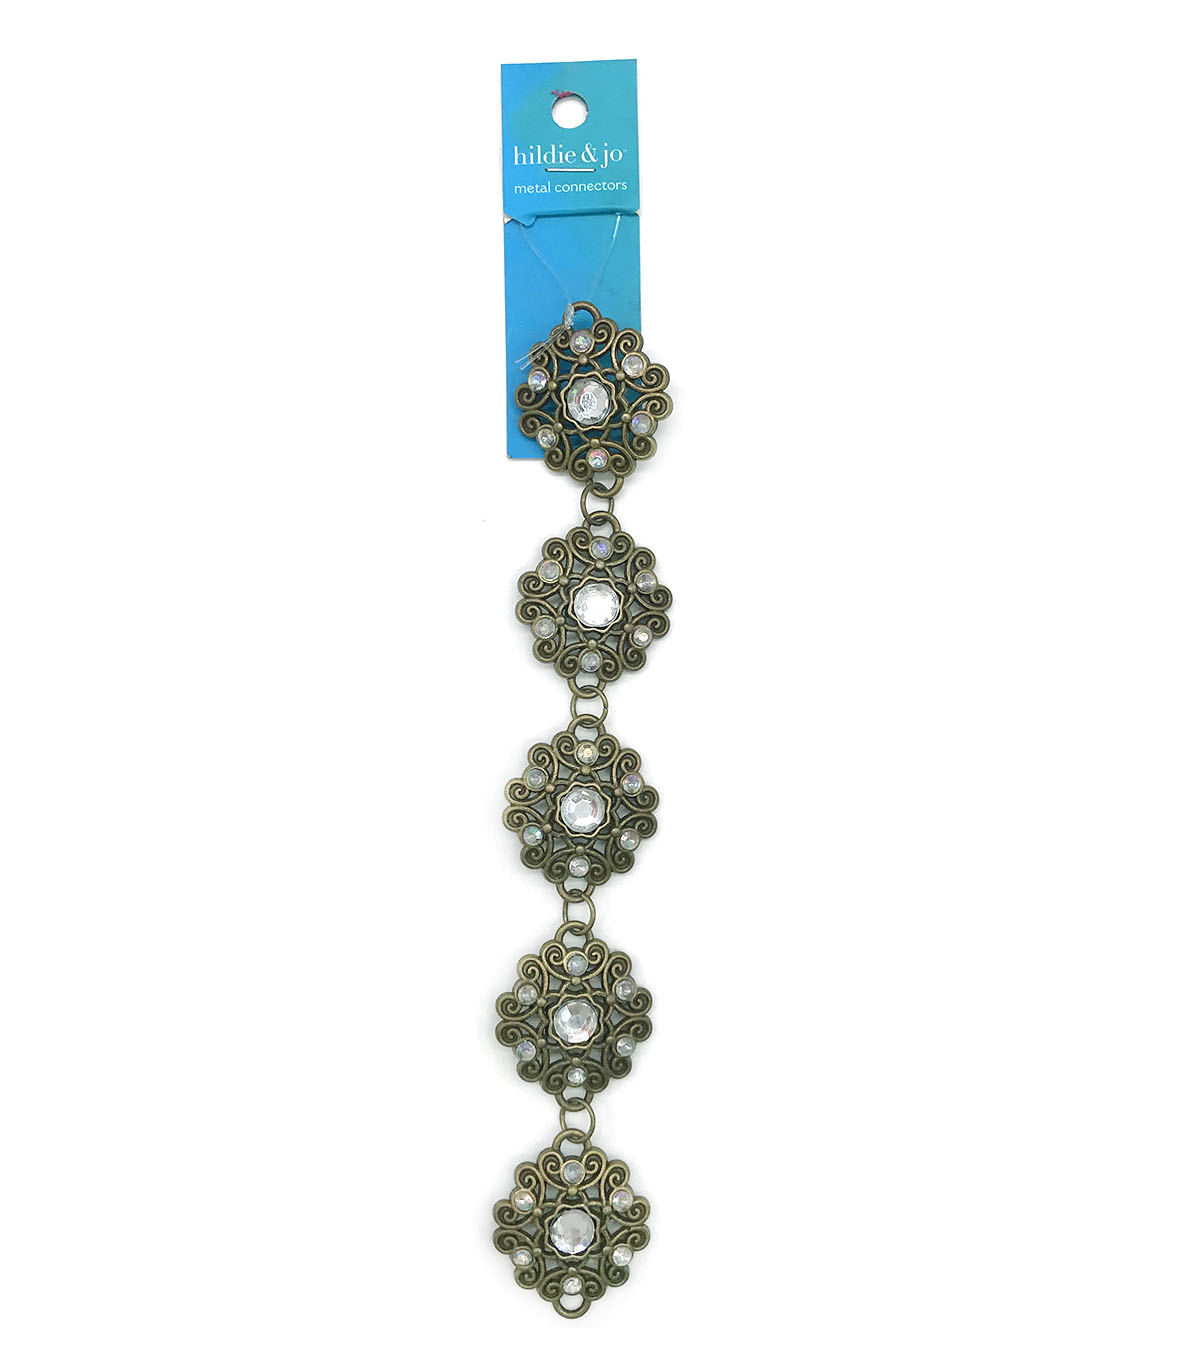 Blue Moon Beads 7\u0022 Strand Metal Connector Flower Filigree Oxidized Brass